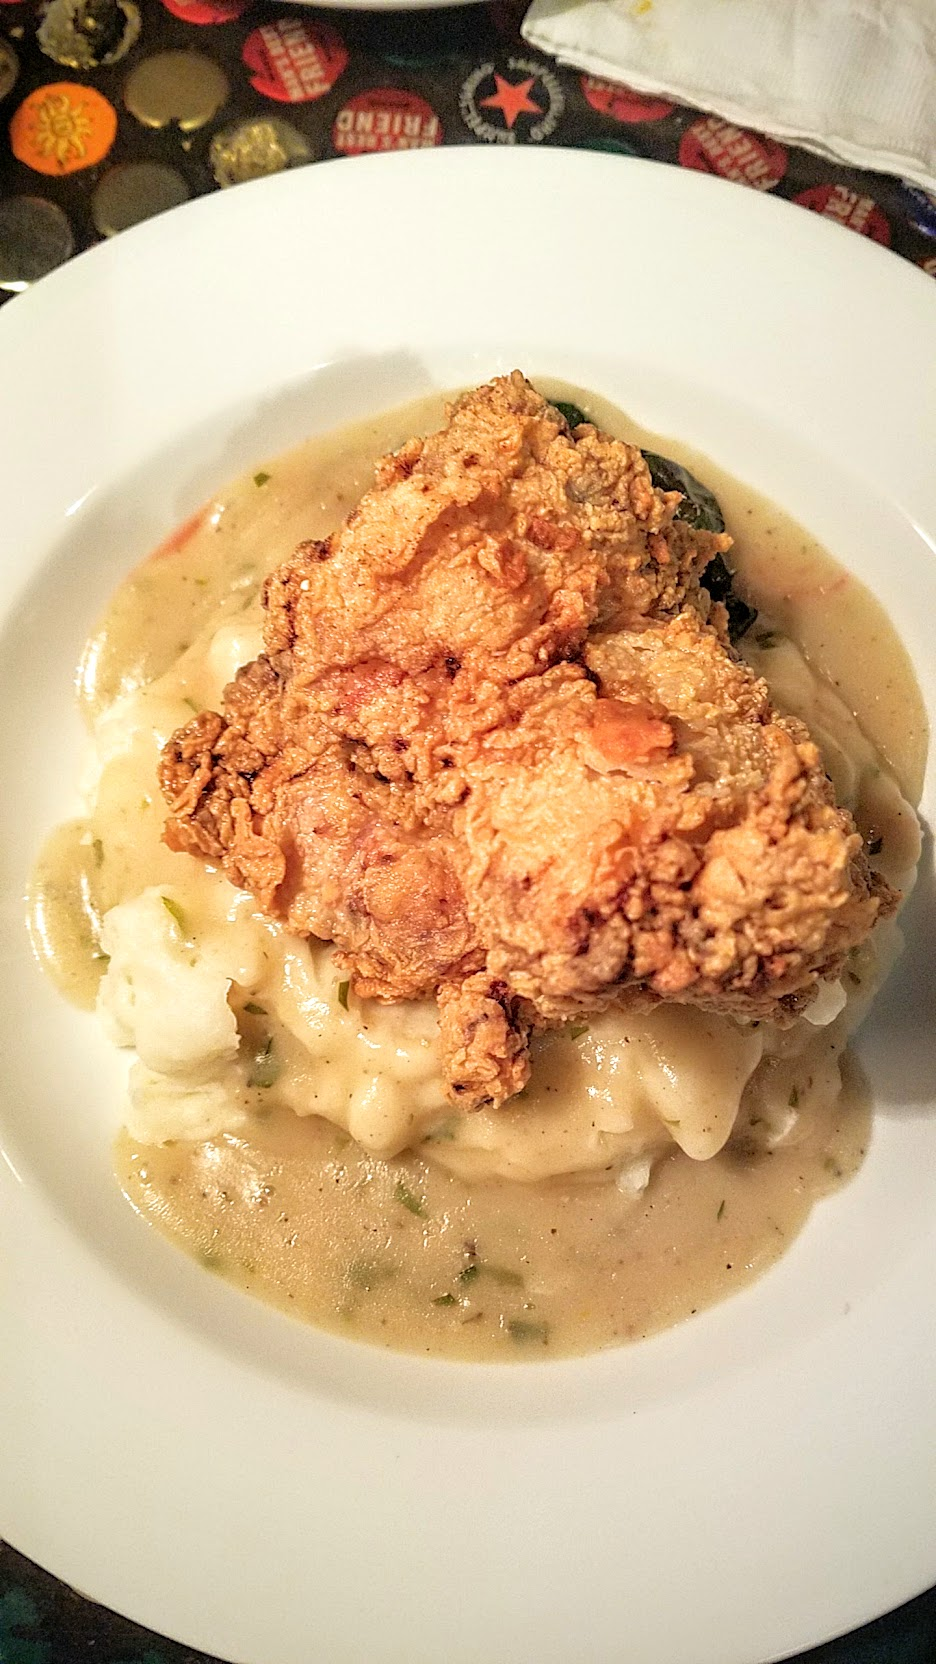 Example Food at Saraveza buttermilk fried chicken with mashed potatoes and braised chard and tarragon gravy